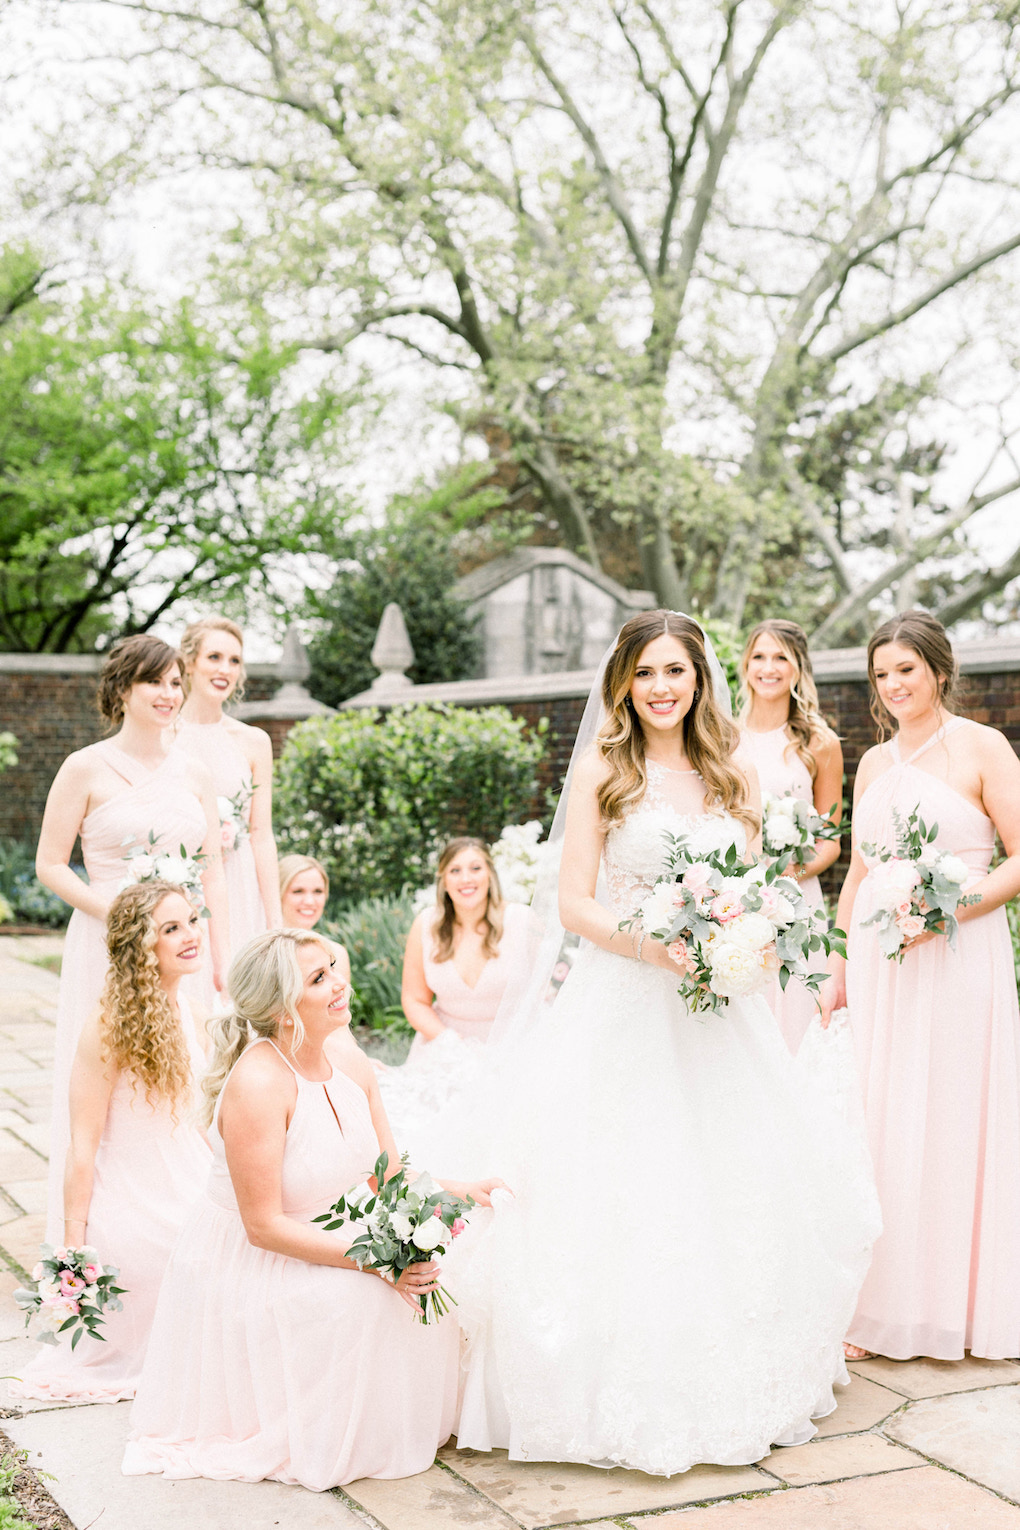 Bridal party photos: Romantic Fairytale wedding at the Omni William Penn in Pittsburgh, PA planned by Exhale Events. Find more wedding inspiration at exhale-events.com!